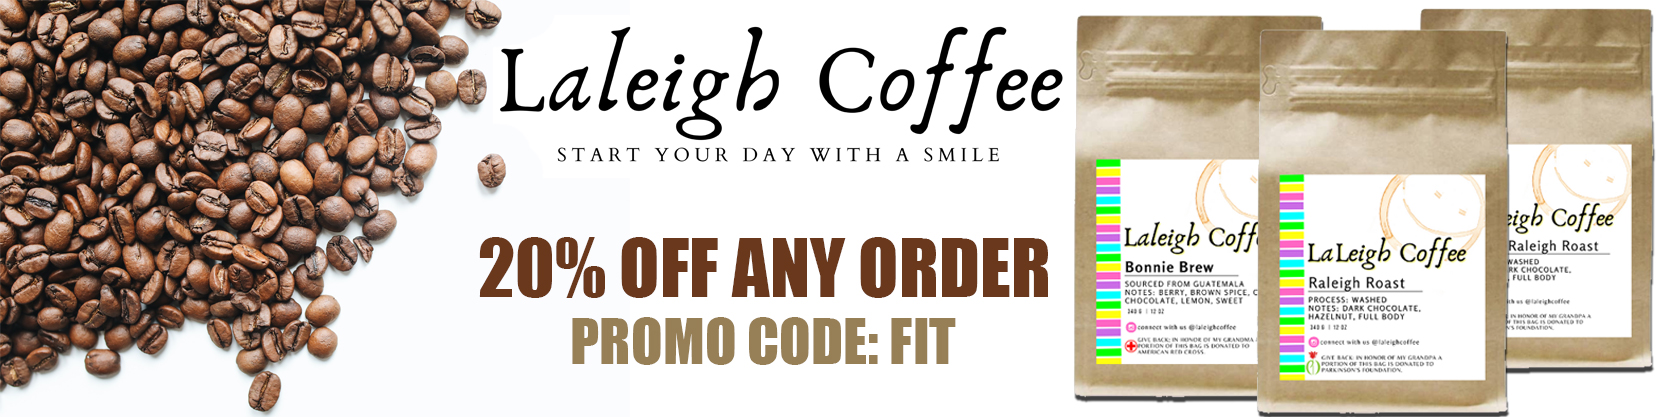 Laleigh Coffee